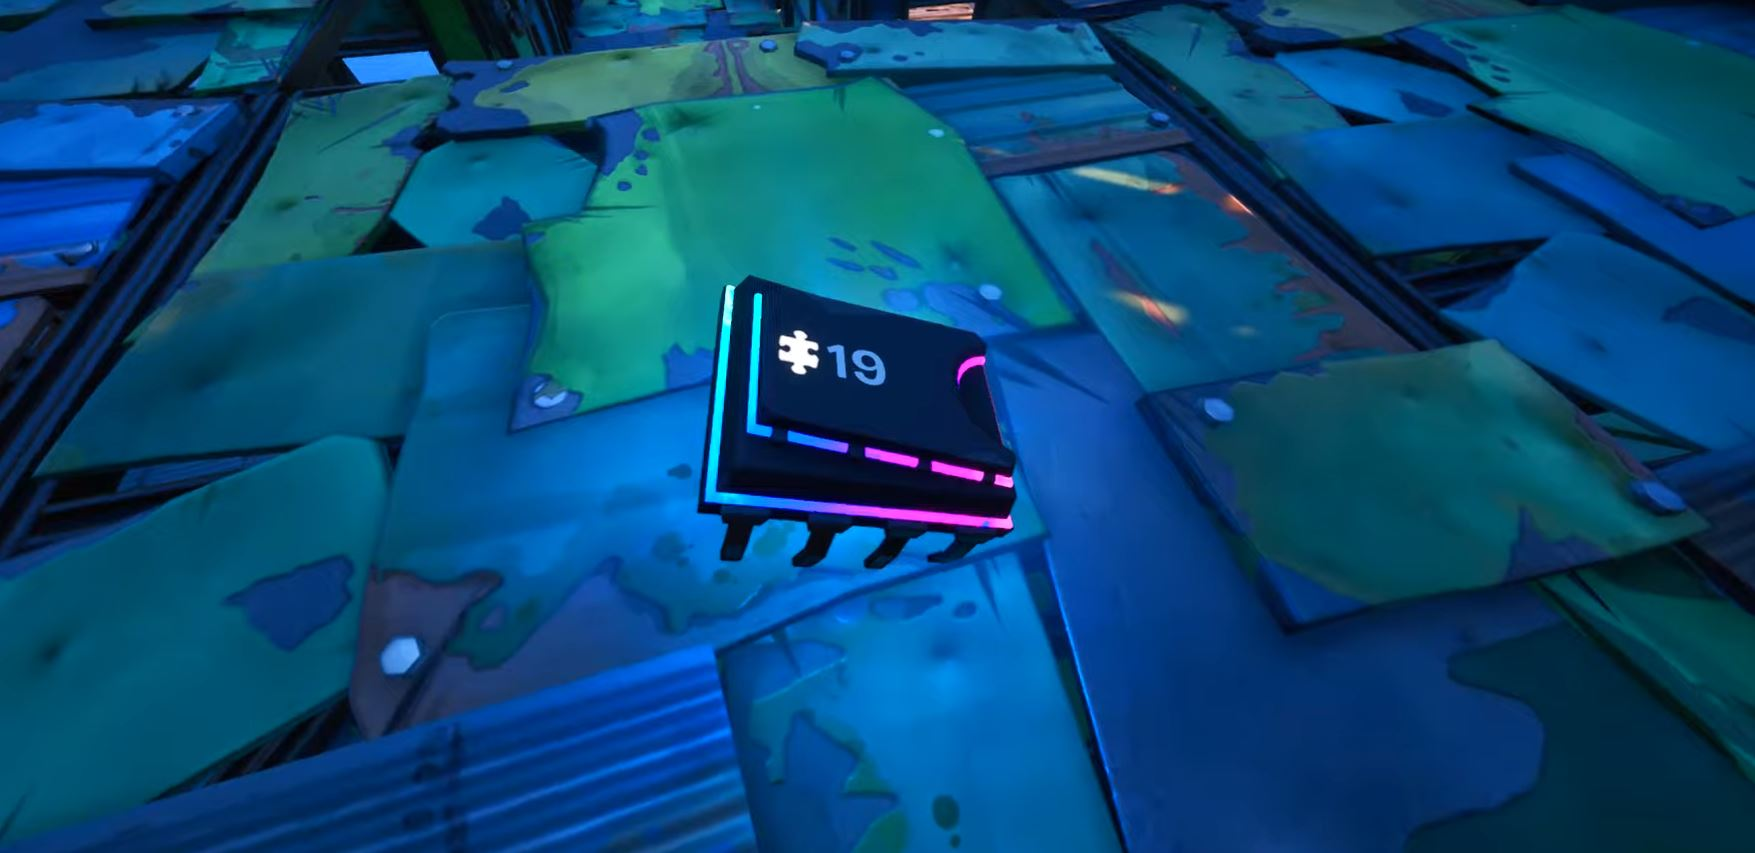 Fortbyte 19 in-game